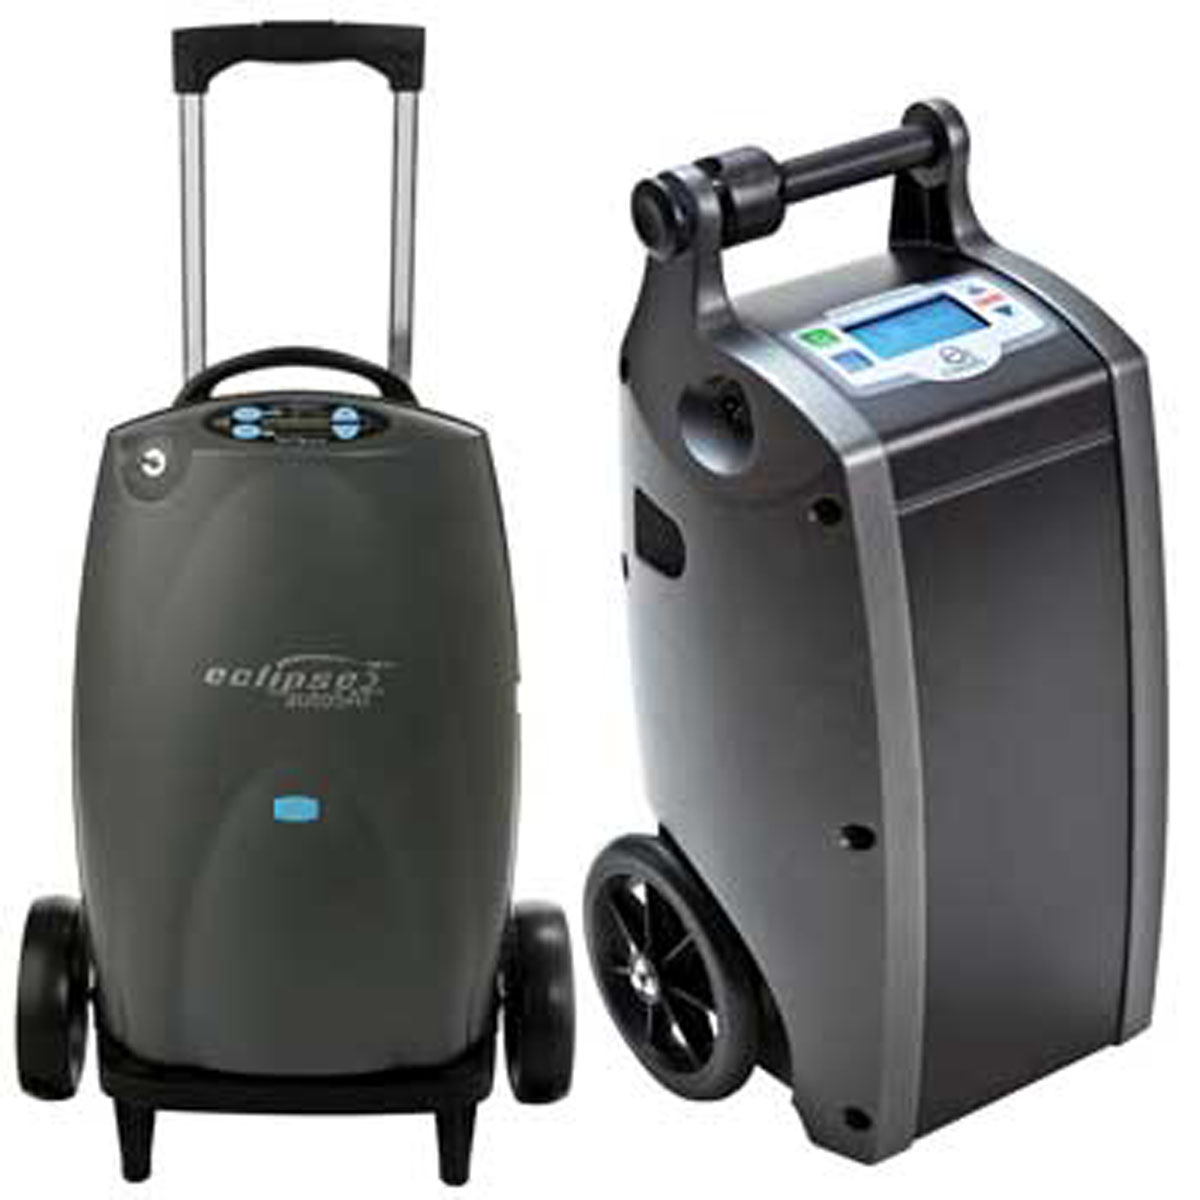 2000s Some Portable Concentrators were equivalent in size to carry-on luggage.